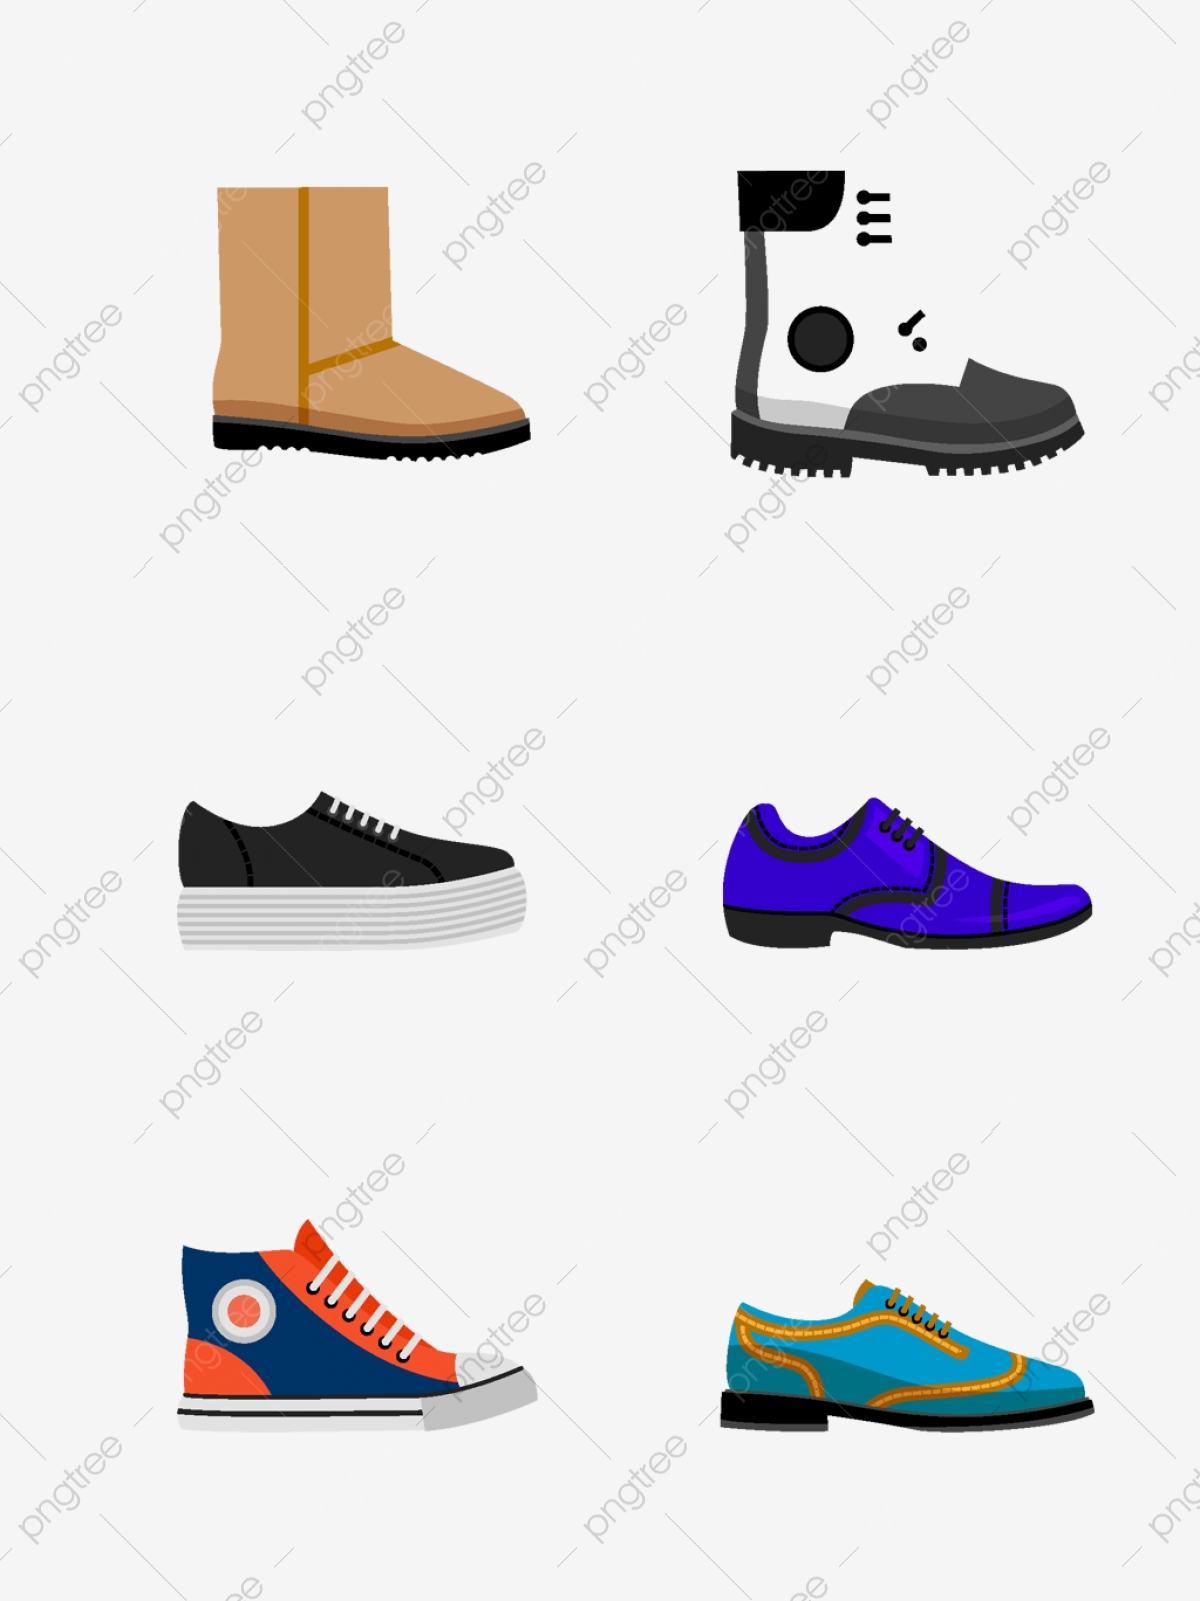 Cotton clipart simple. Boots decorated with elements